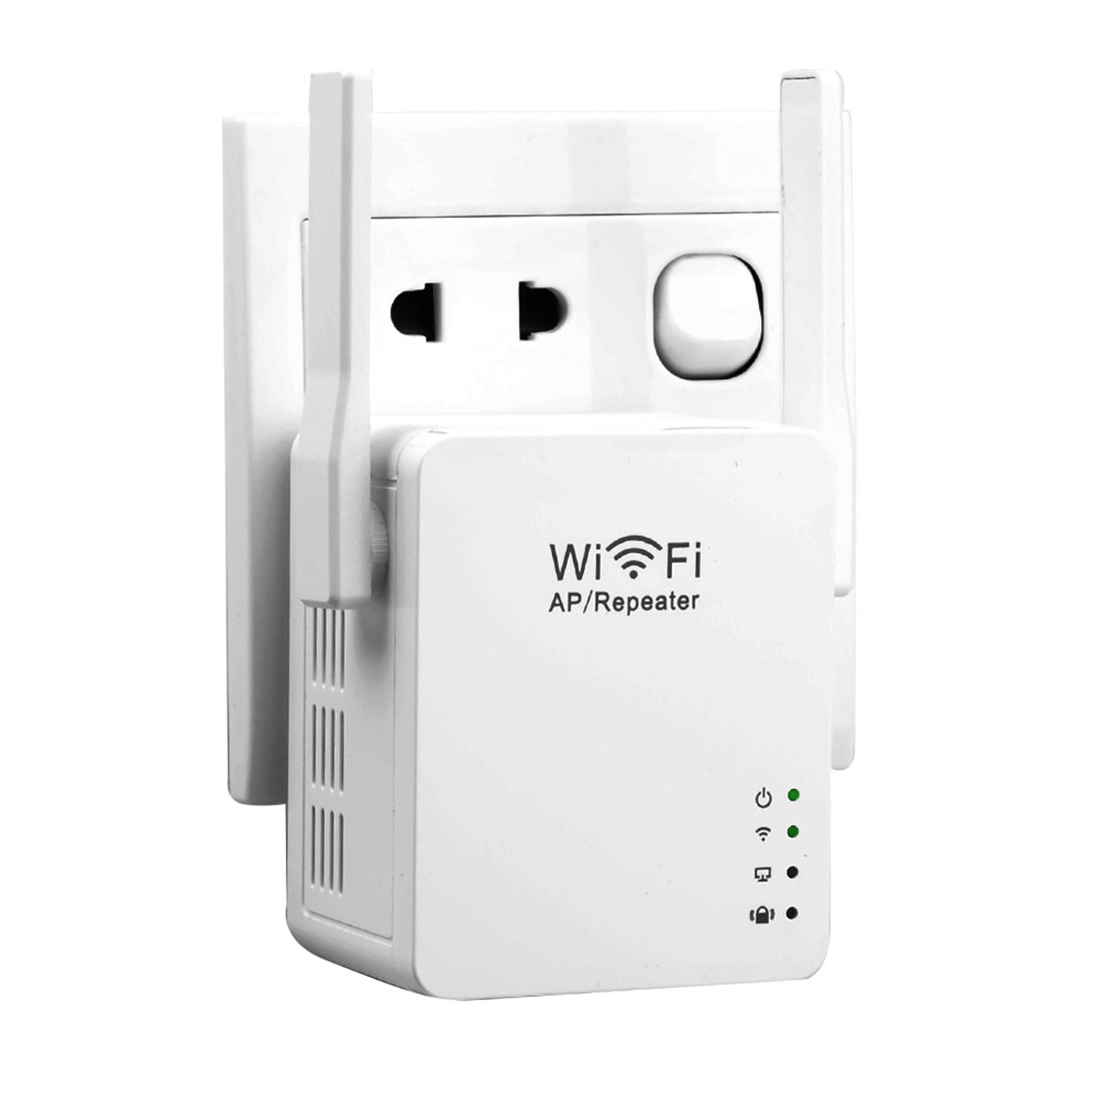 NOYOKERE New USB WiFi Repeater WiFi Range Extender with Micro USB2.0 Port 5V/2A 802.11N Booster Signal and AP Mode EU/US Plug